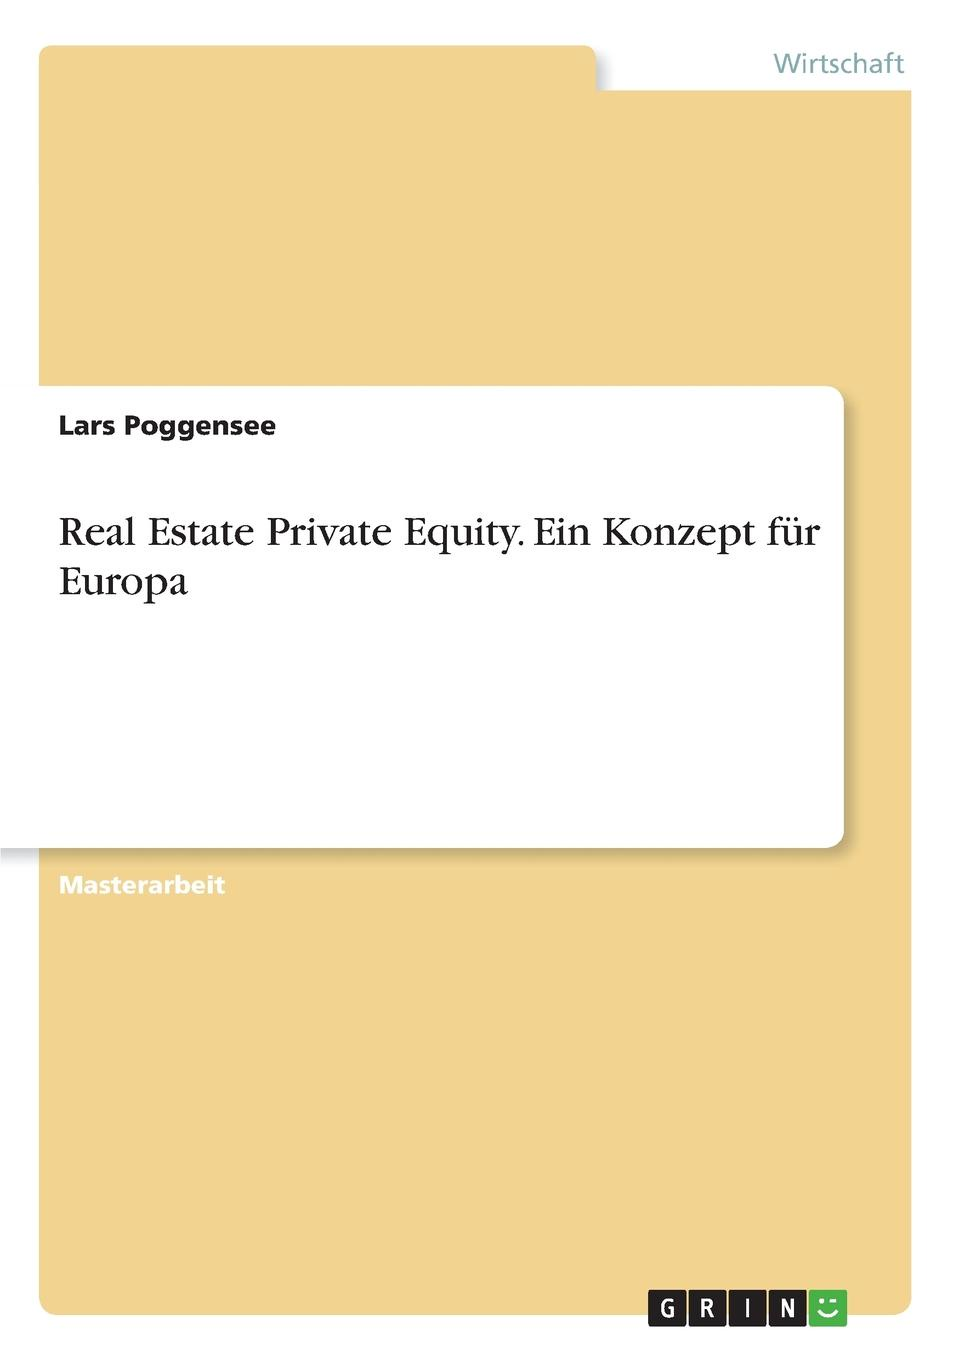 Lars Poggensee Real Estate Private Equity. Ein Konzept fur Europa